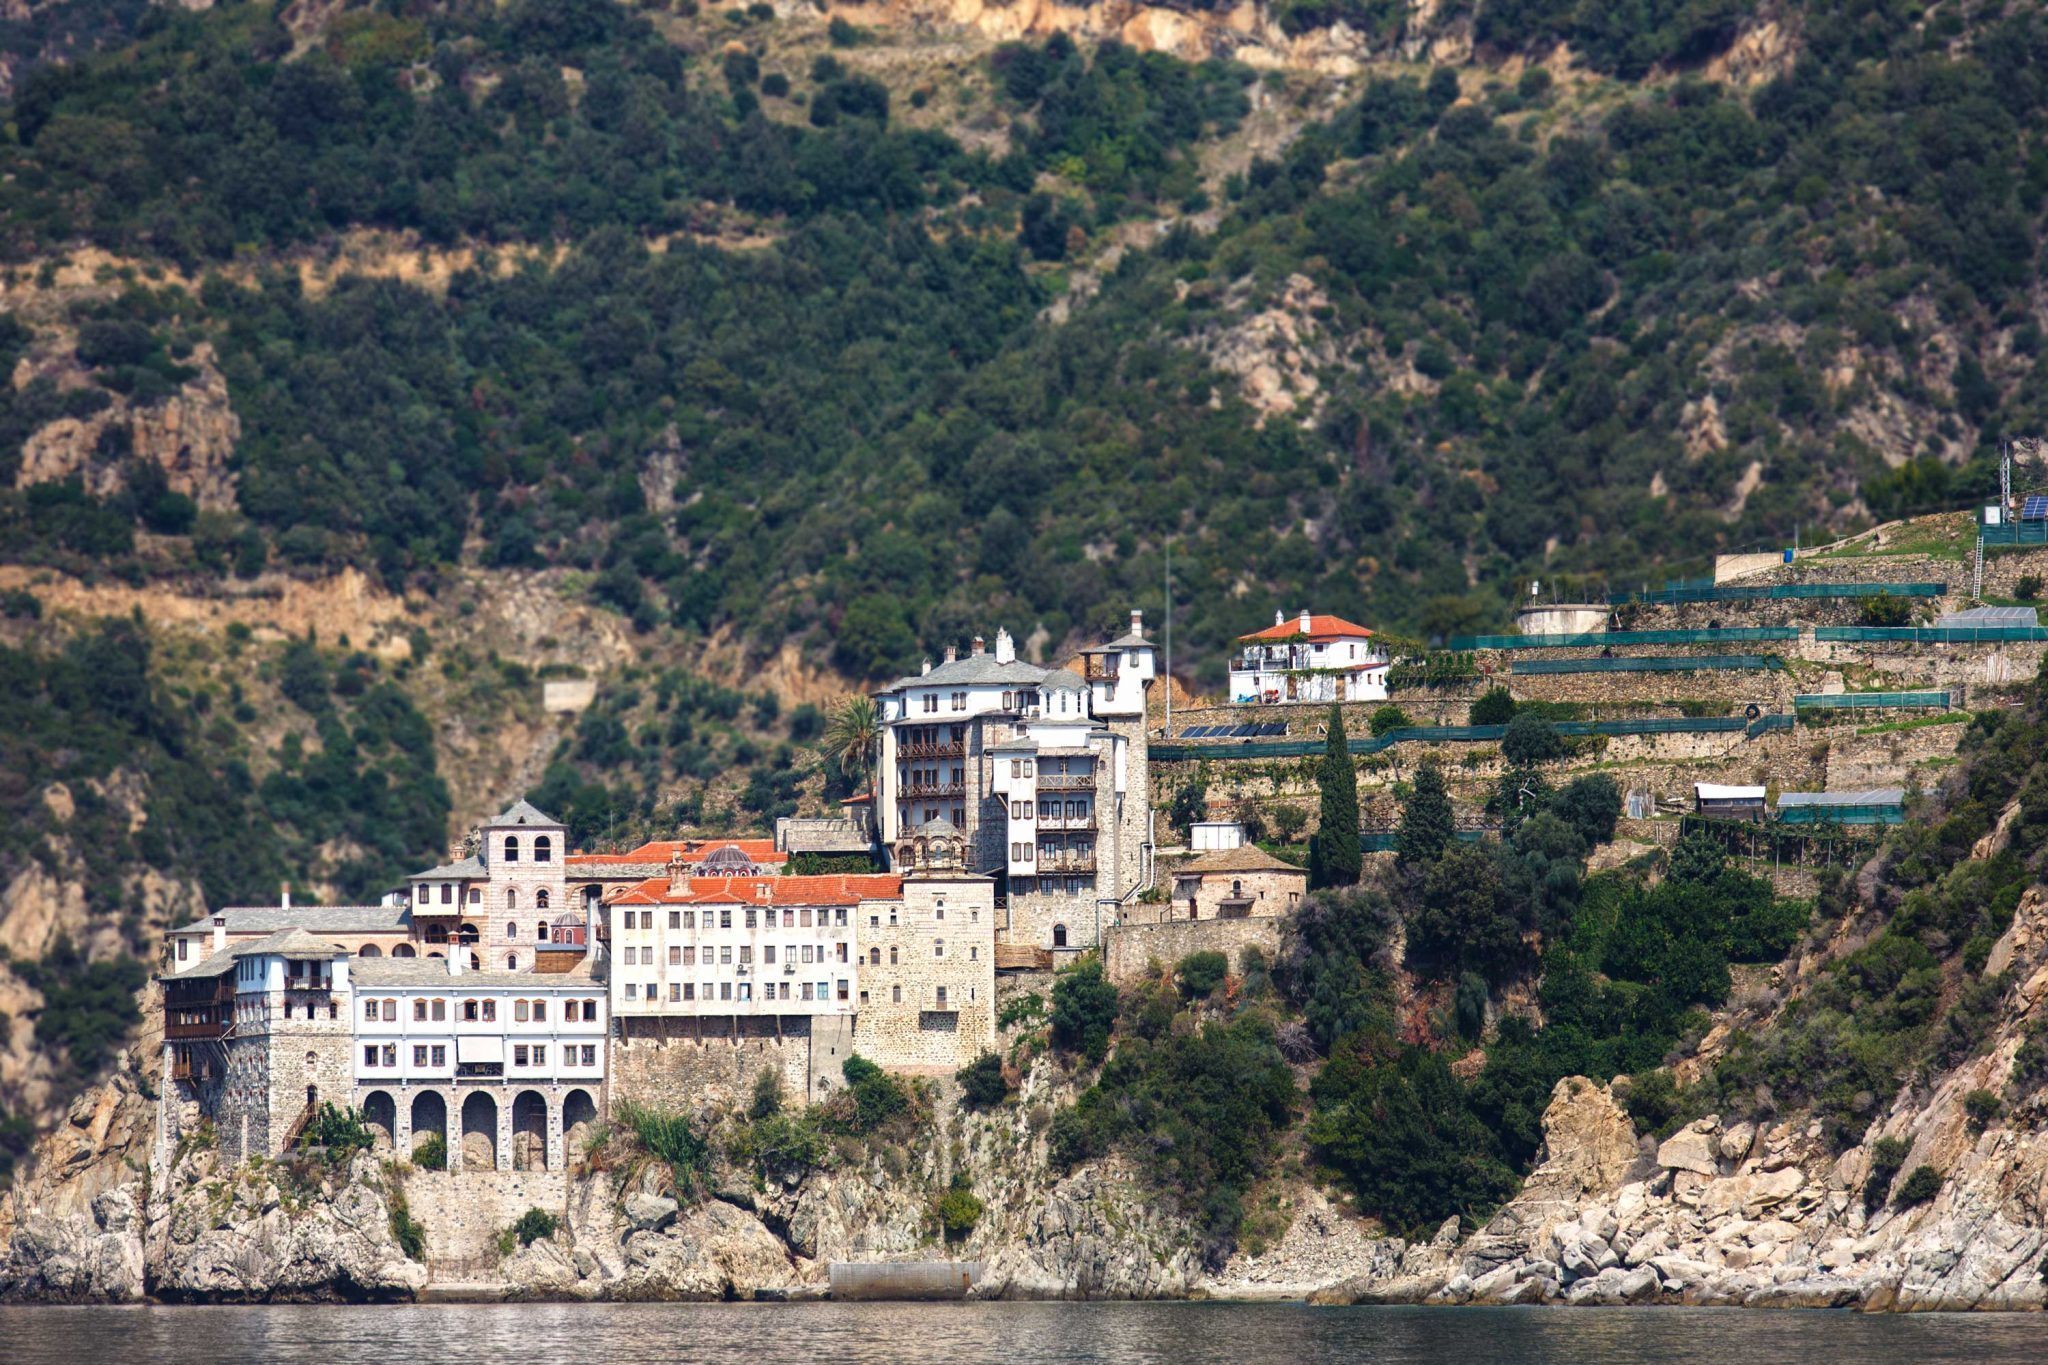 The Holy Monastery of Grigoriou, Mount Athos